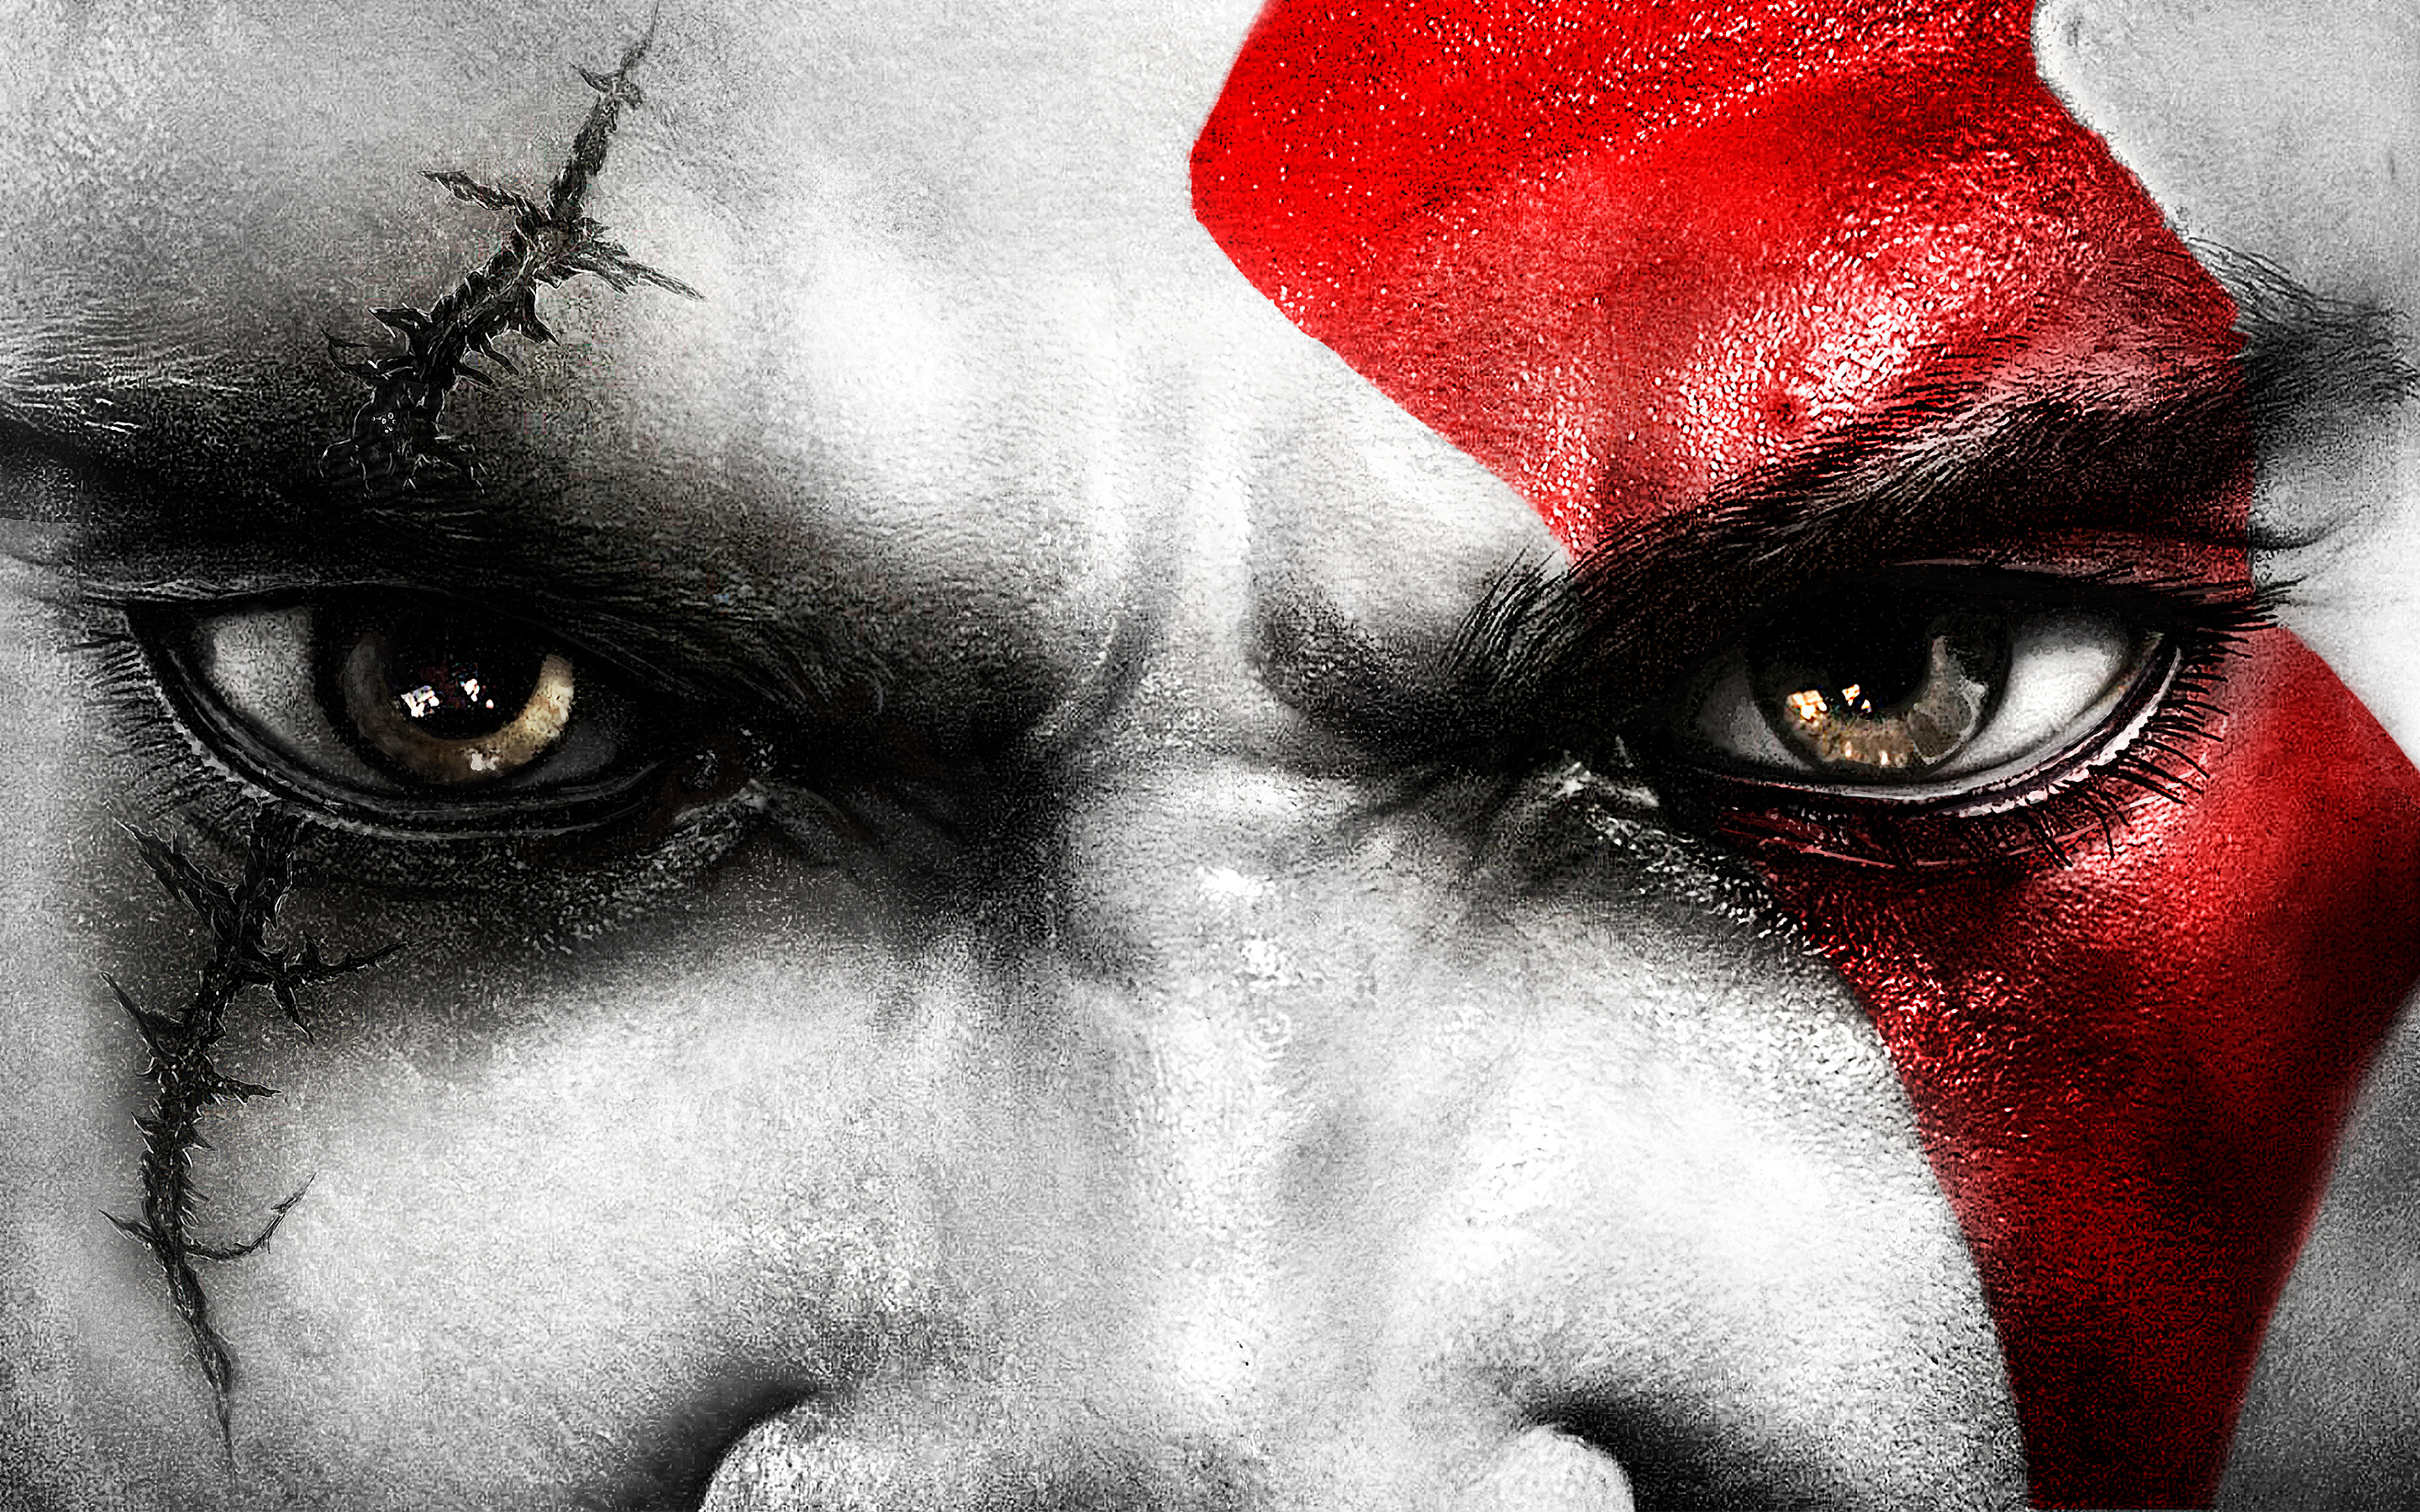 Kratos Eyes Wallpapers HD Wallpapers 2880x1800